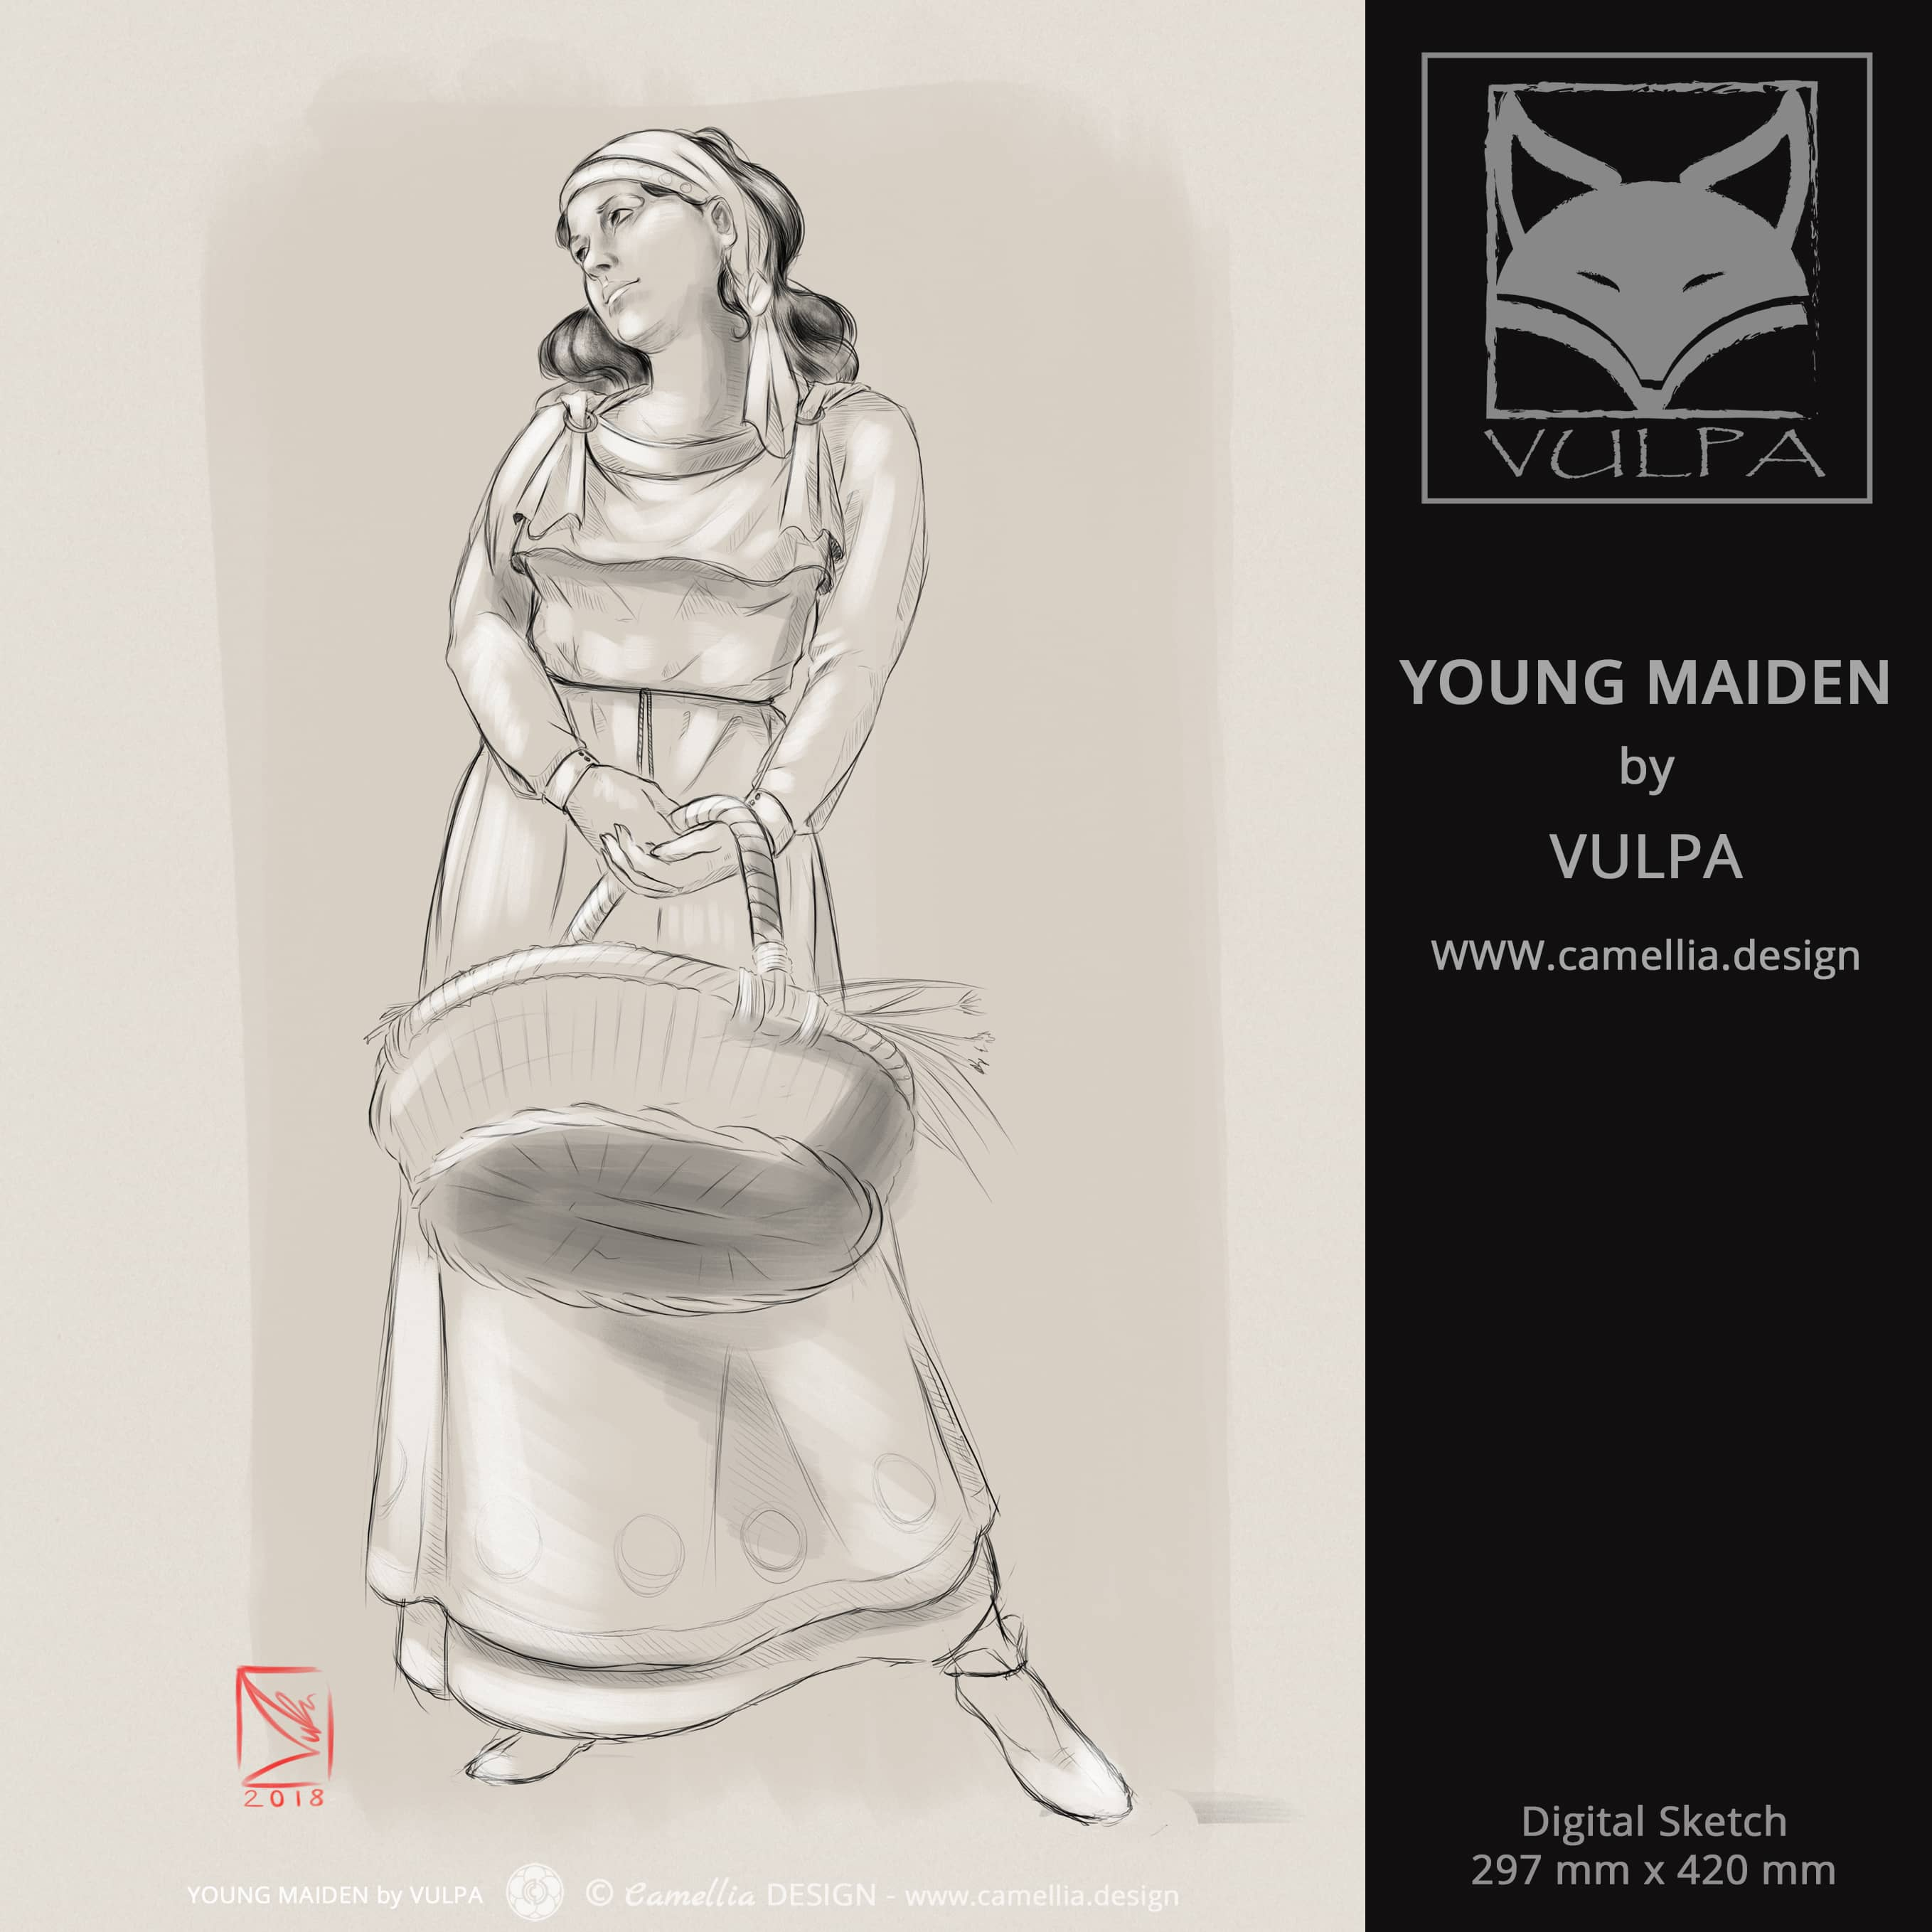 YOUNG MAIDEN